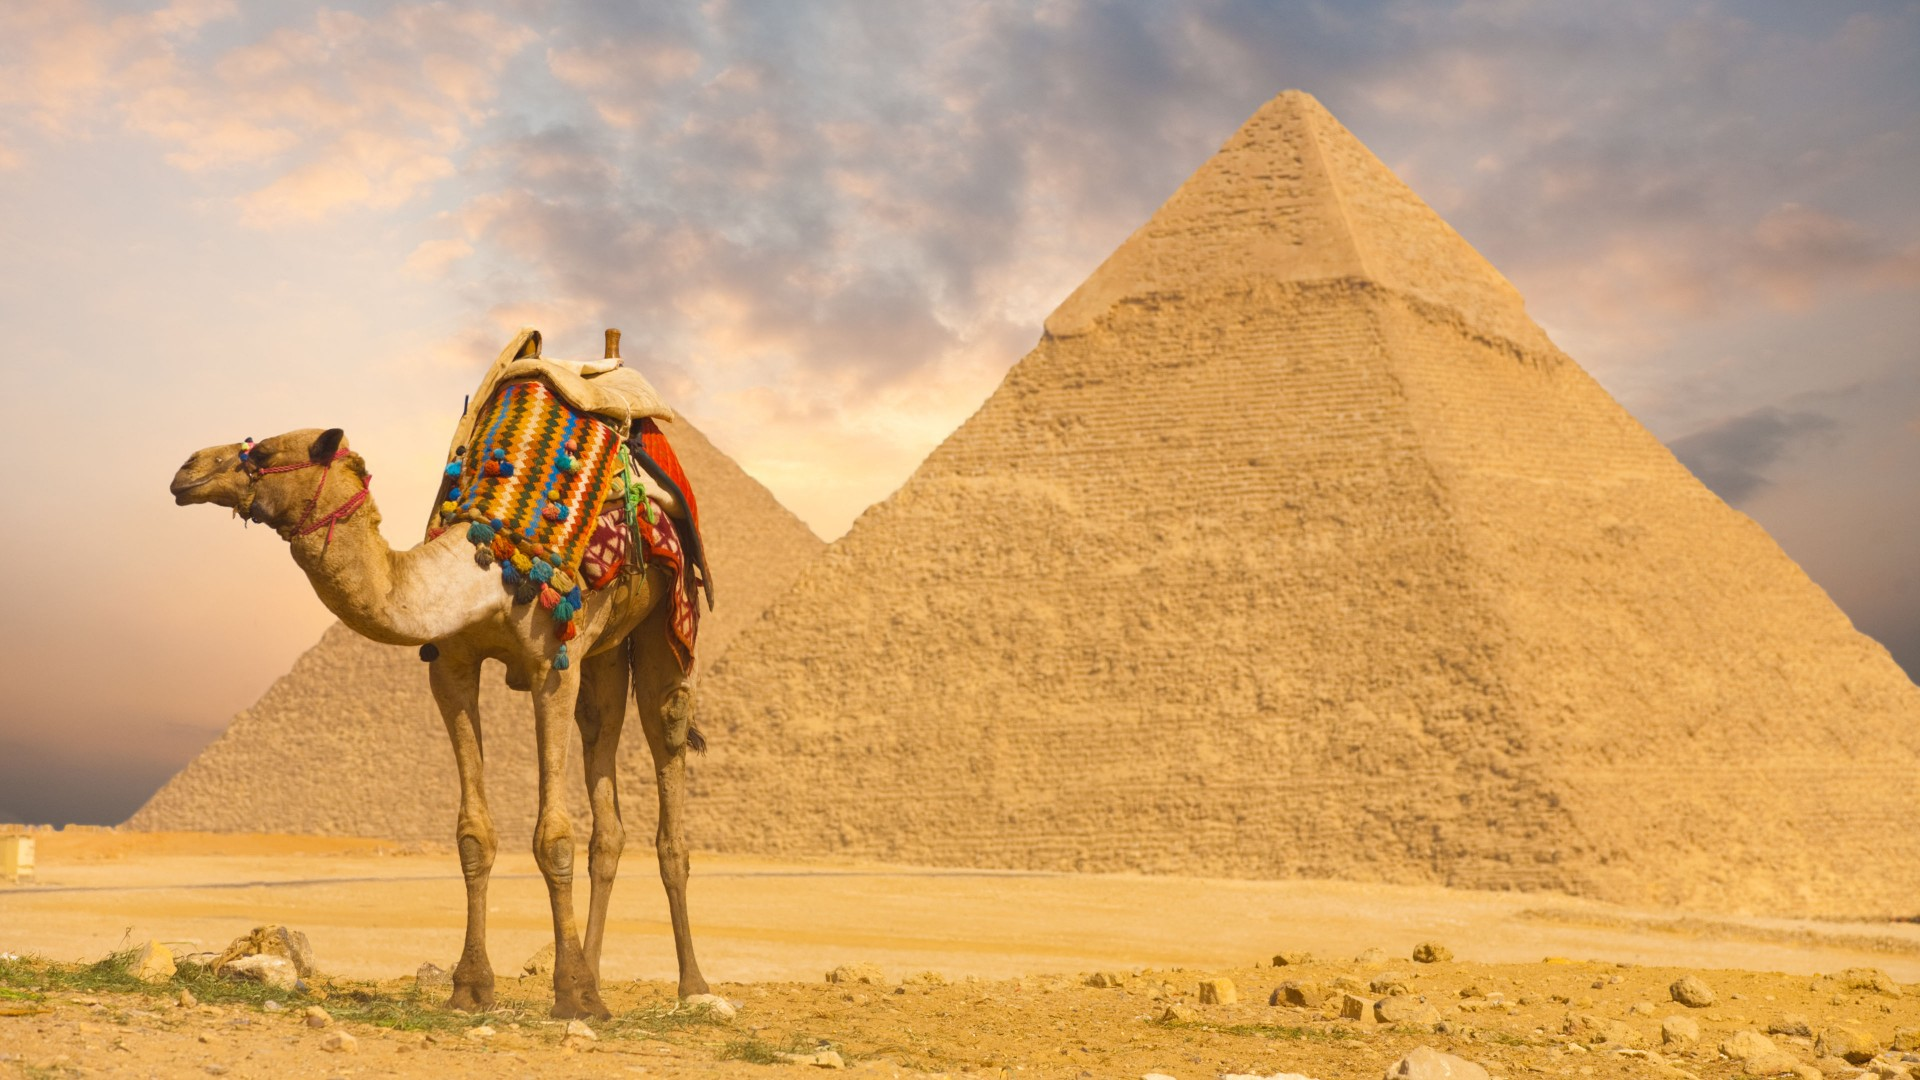 Camel Wallpapers hd